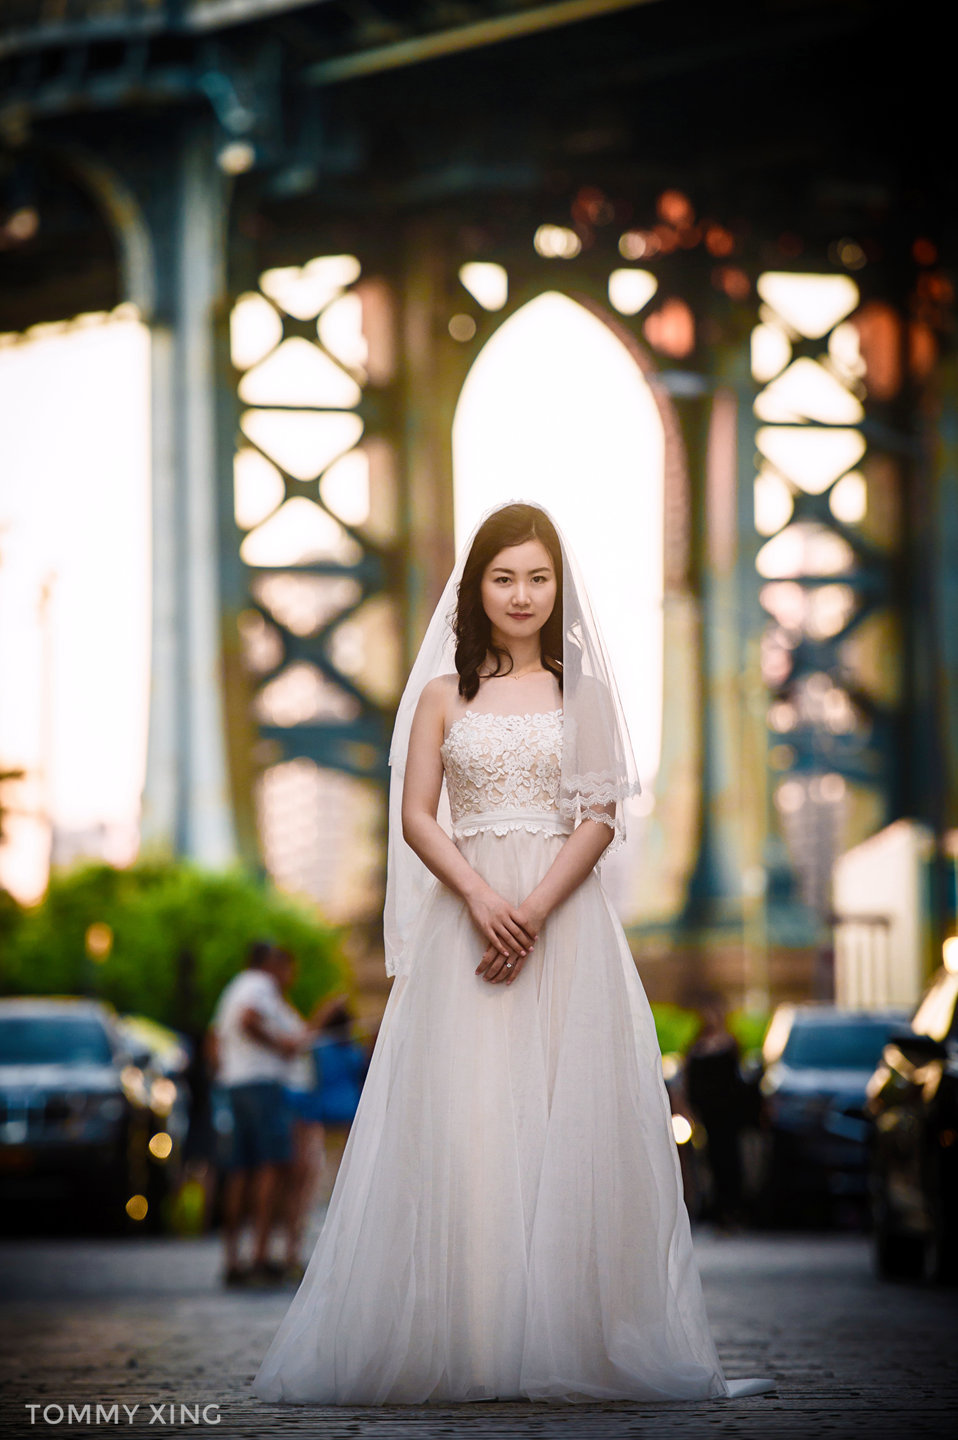 New York Pre Wedding Song & Ziyao by Tommy Xing Photography 纽约婚纱照摄影 33.jpg